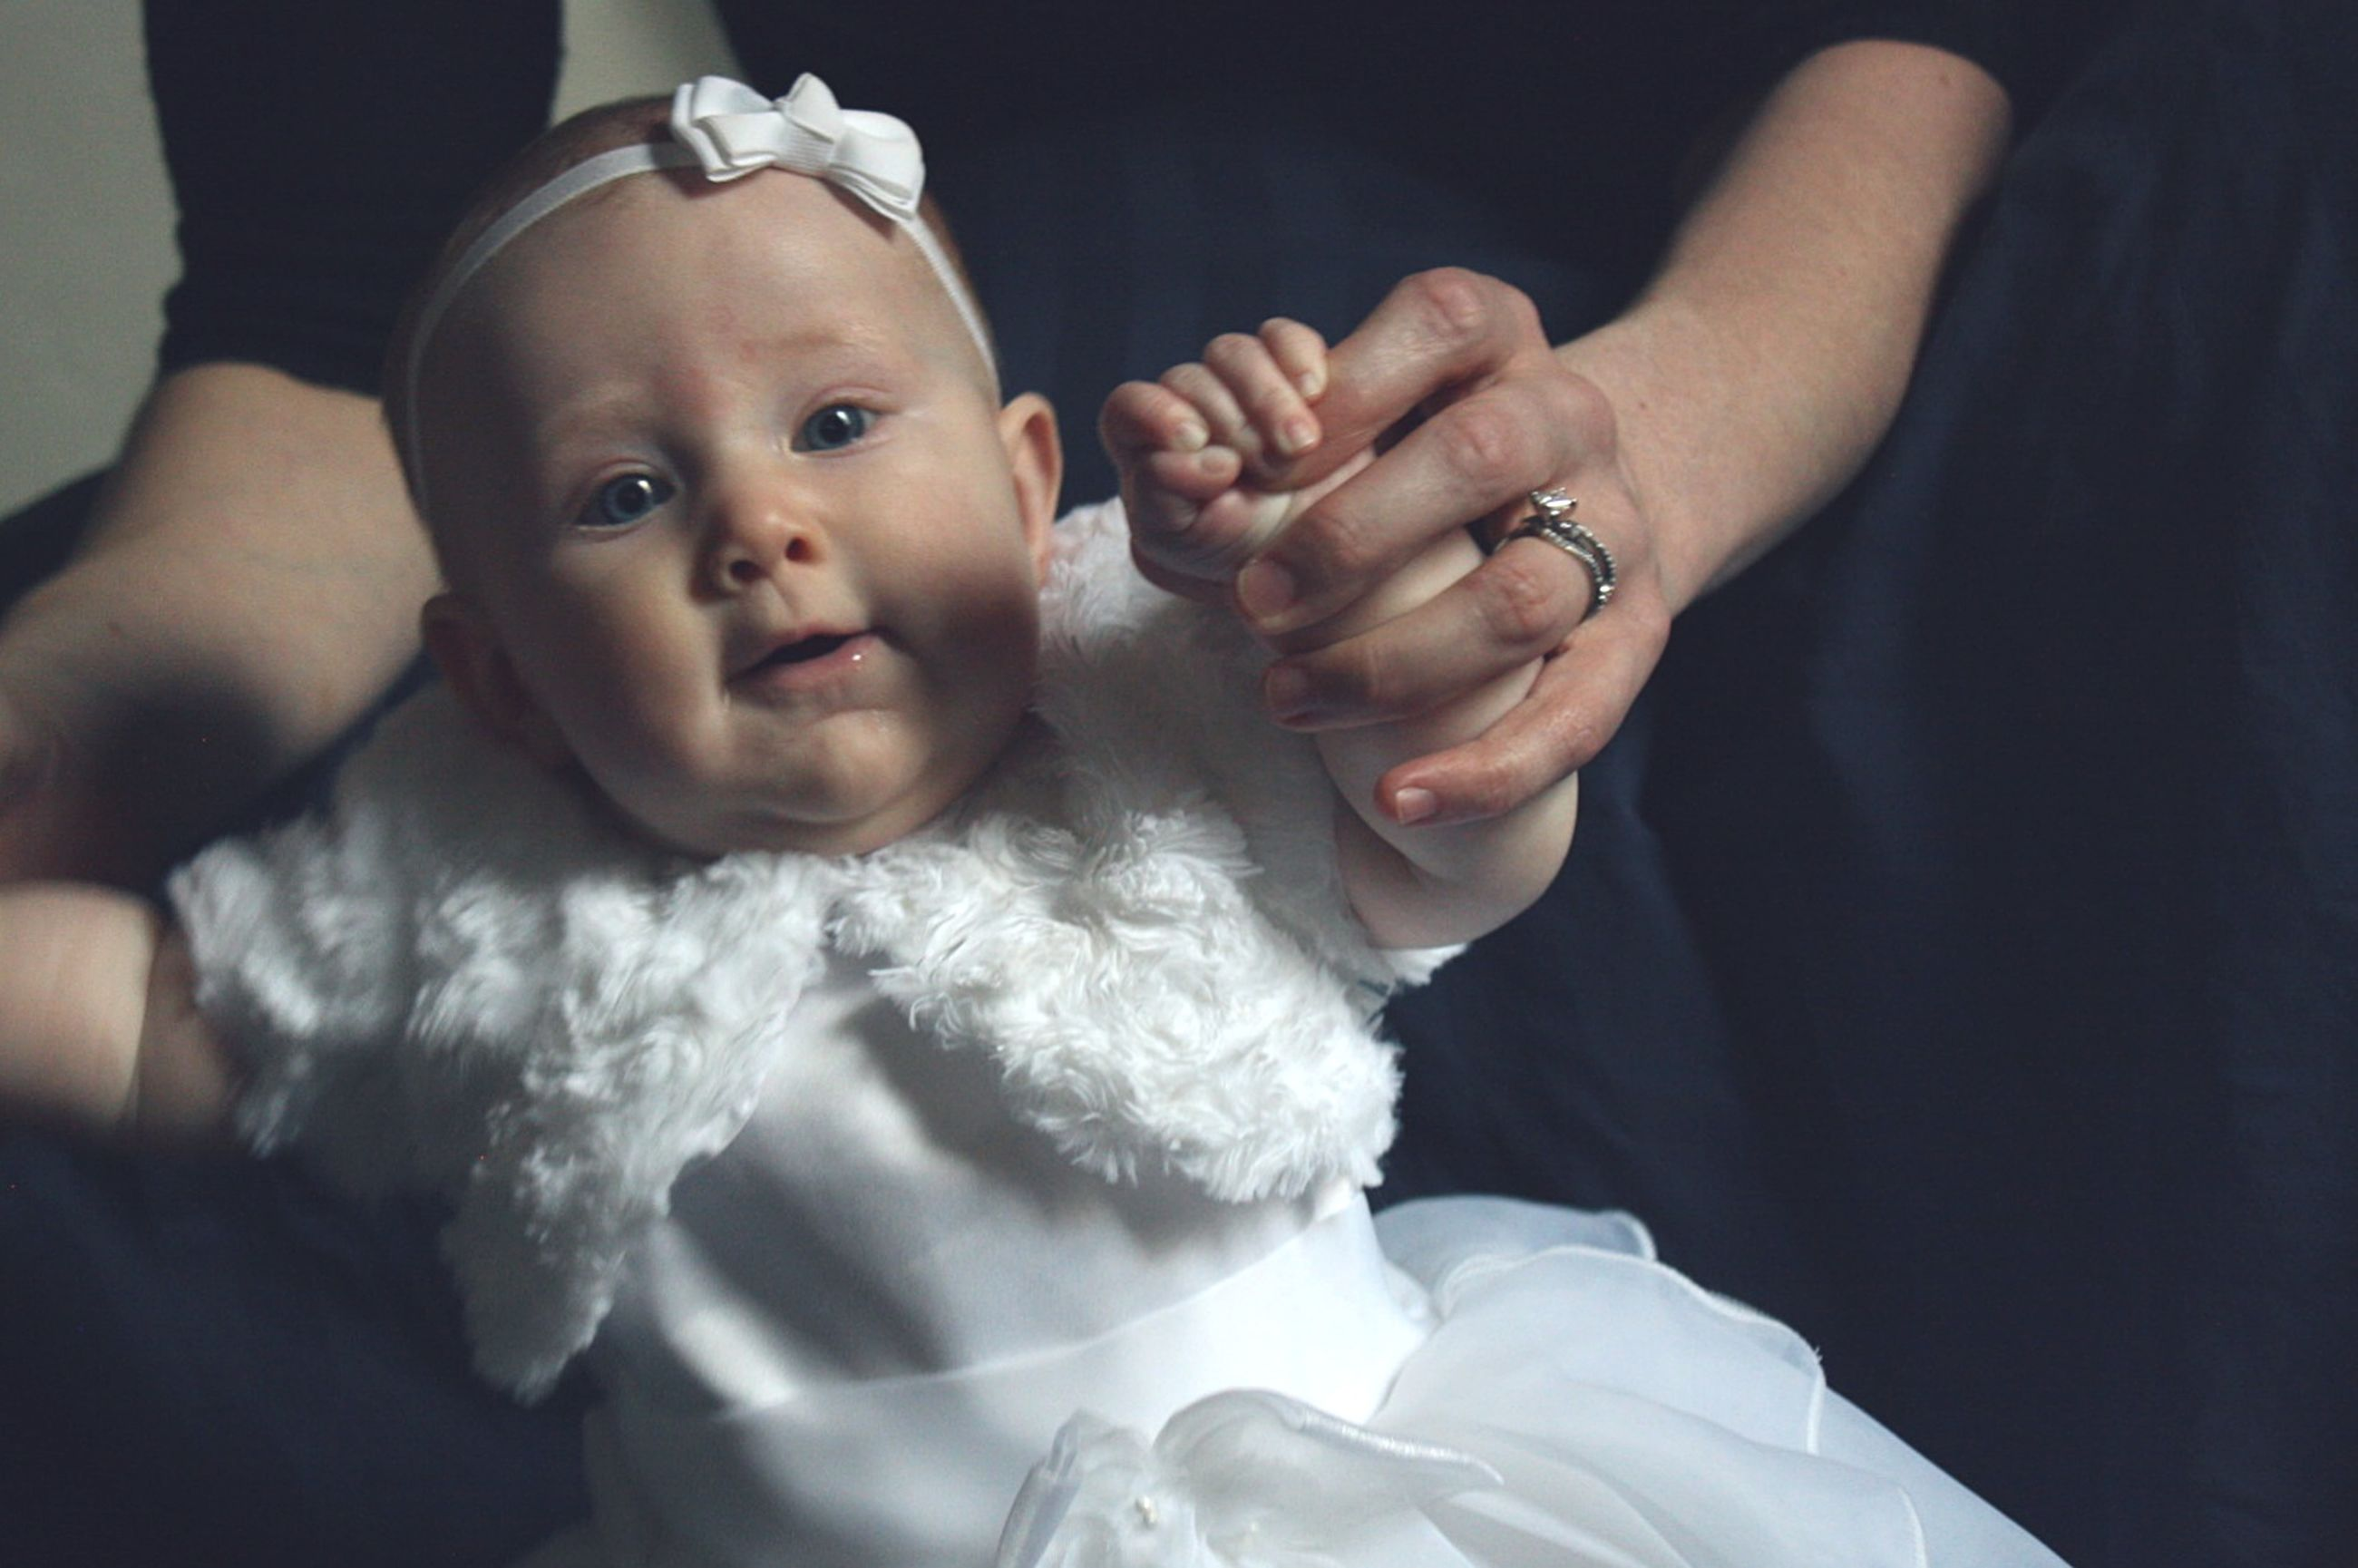 baby, childhood, real people, two people, togetherness, innocence, love, cute, babyhood, indoors, lifestyles, holding, human hand, bonding, close-up, day, people